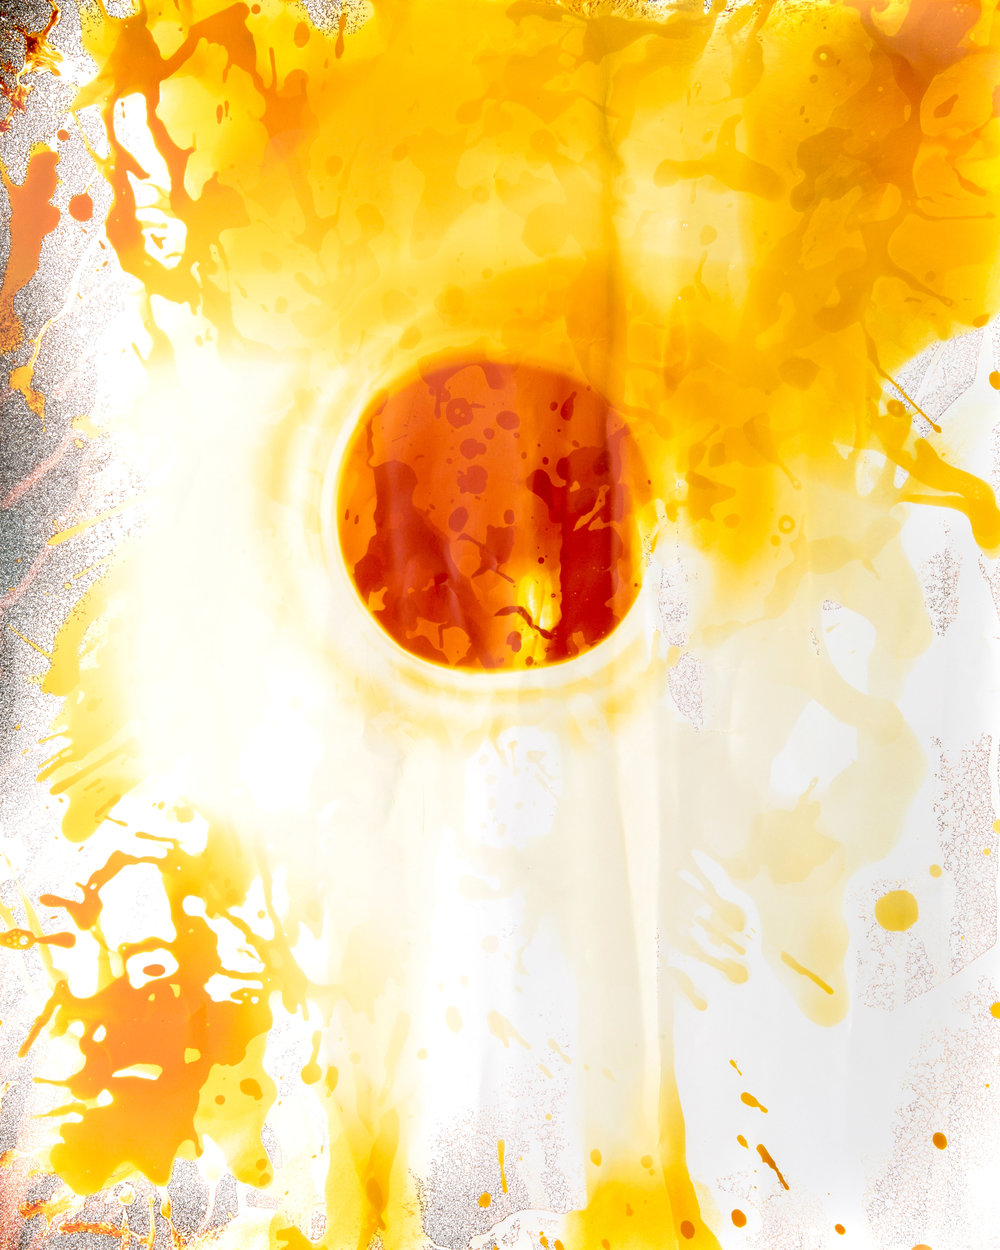 Fire From The Sun (Not Hell)